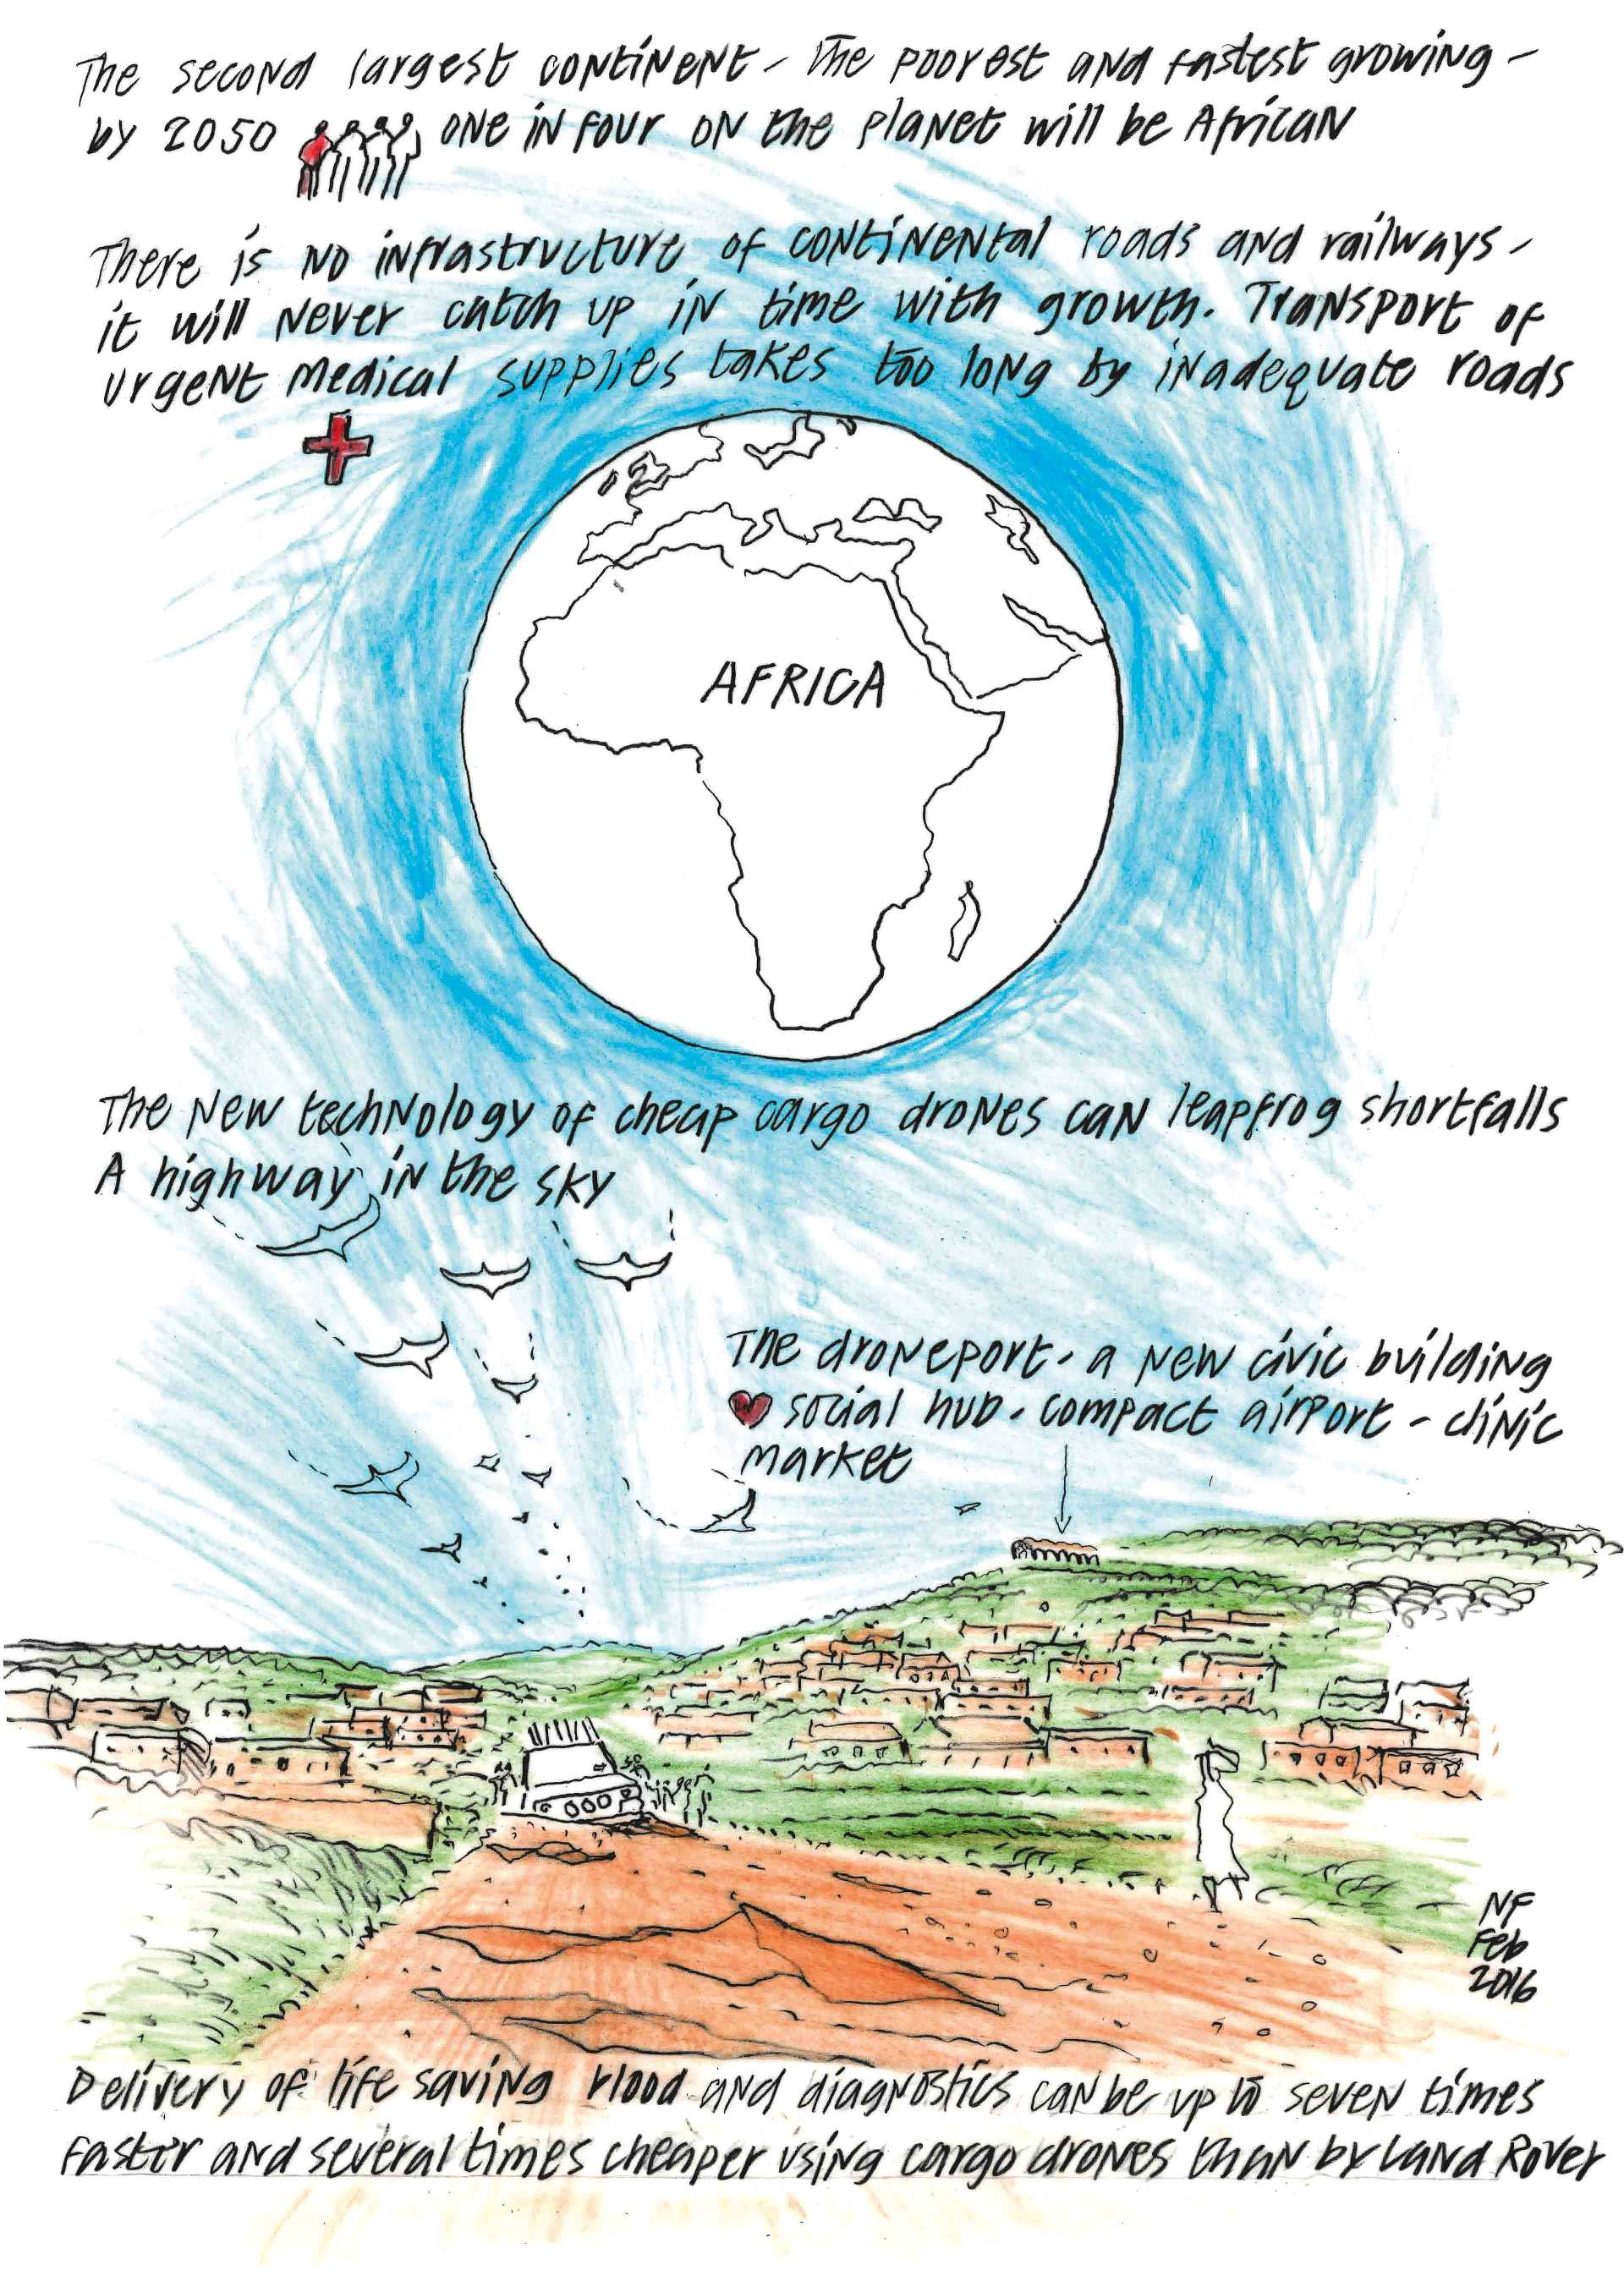 Drones for Africa  - Norman Foster Concept Sketch 1 30